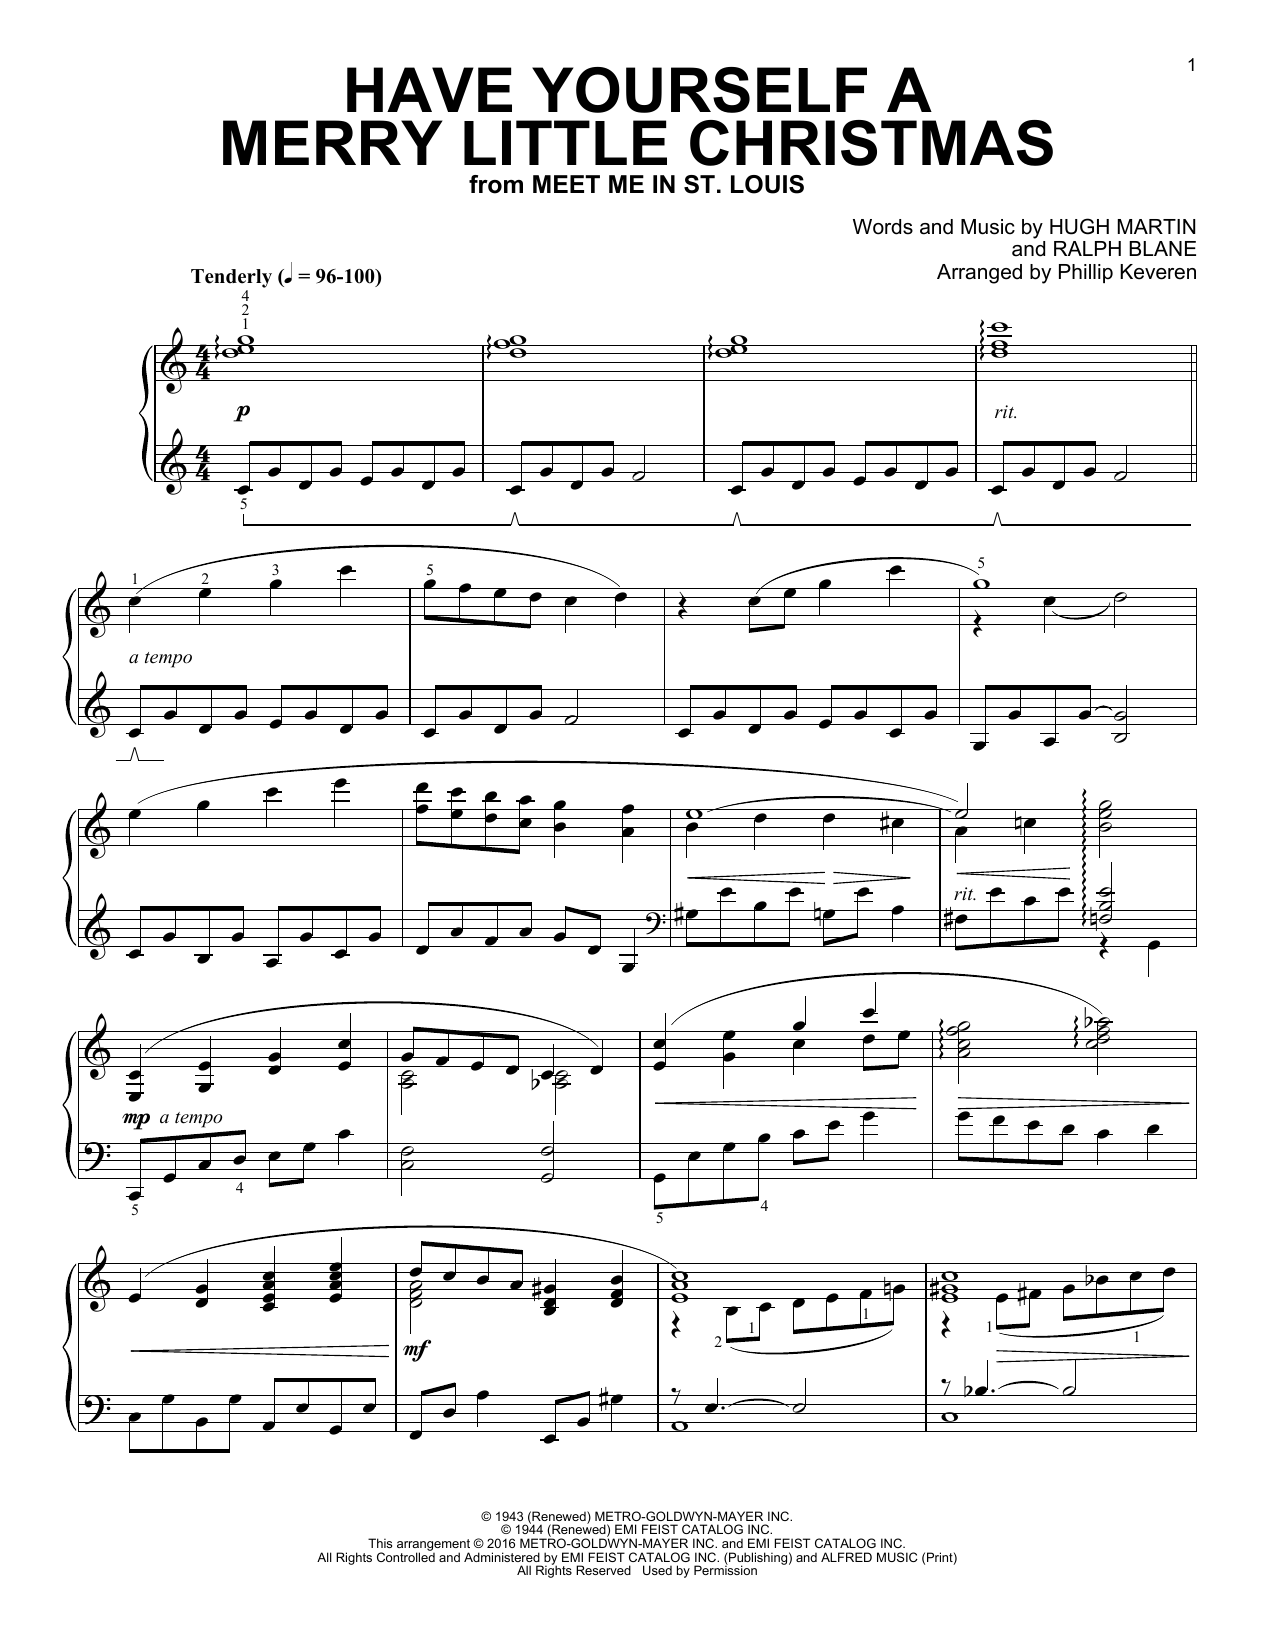 Download Phillip Keveren 'Have Yourself A Merry Little Christmas' Digital Sheet Music Notes & Chords and start playing in minutes